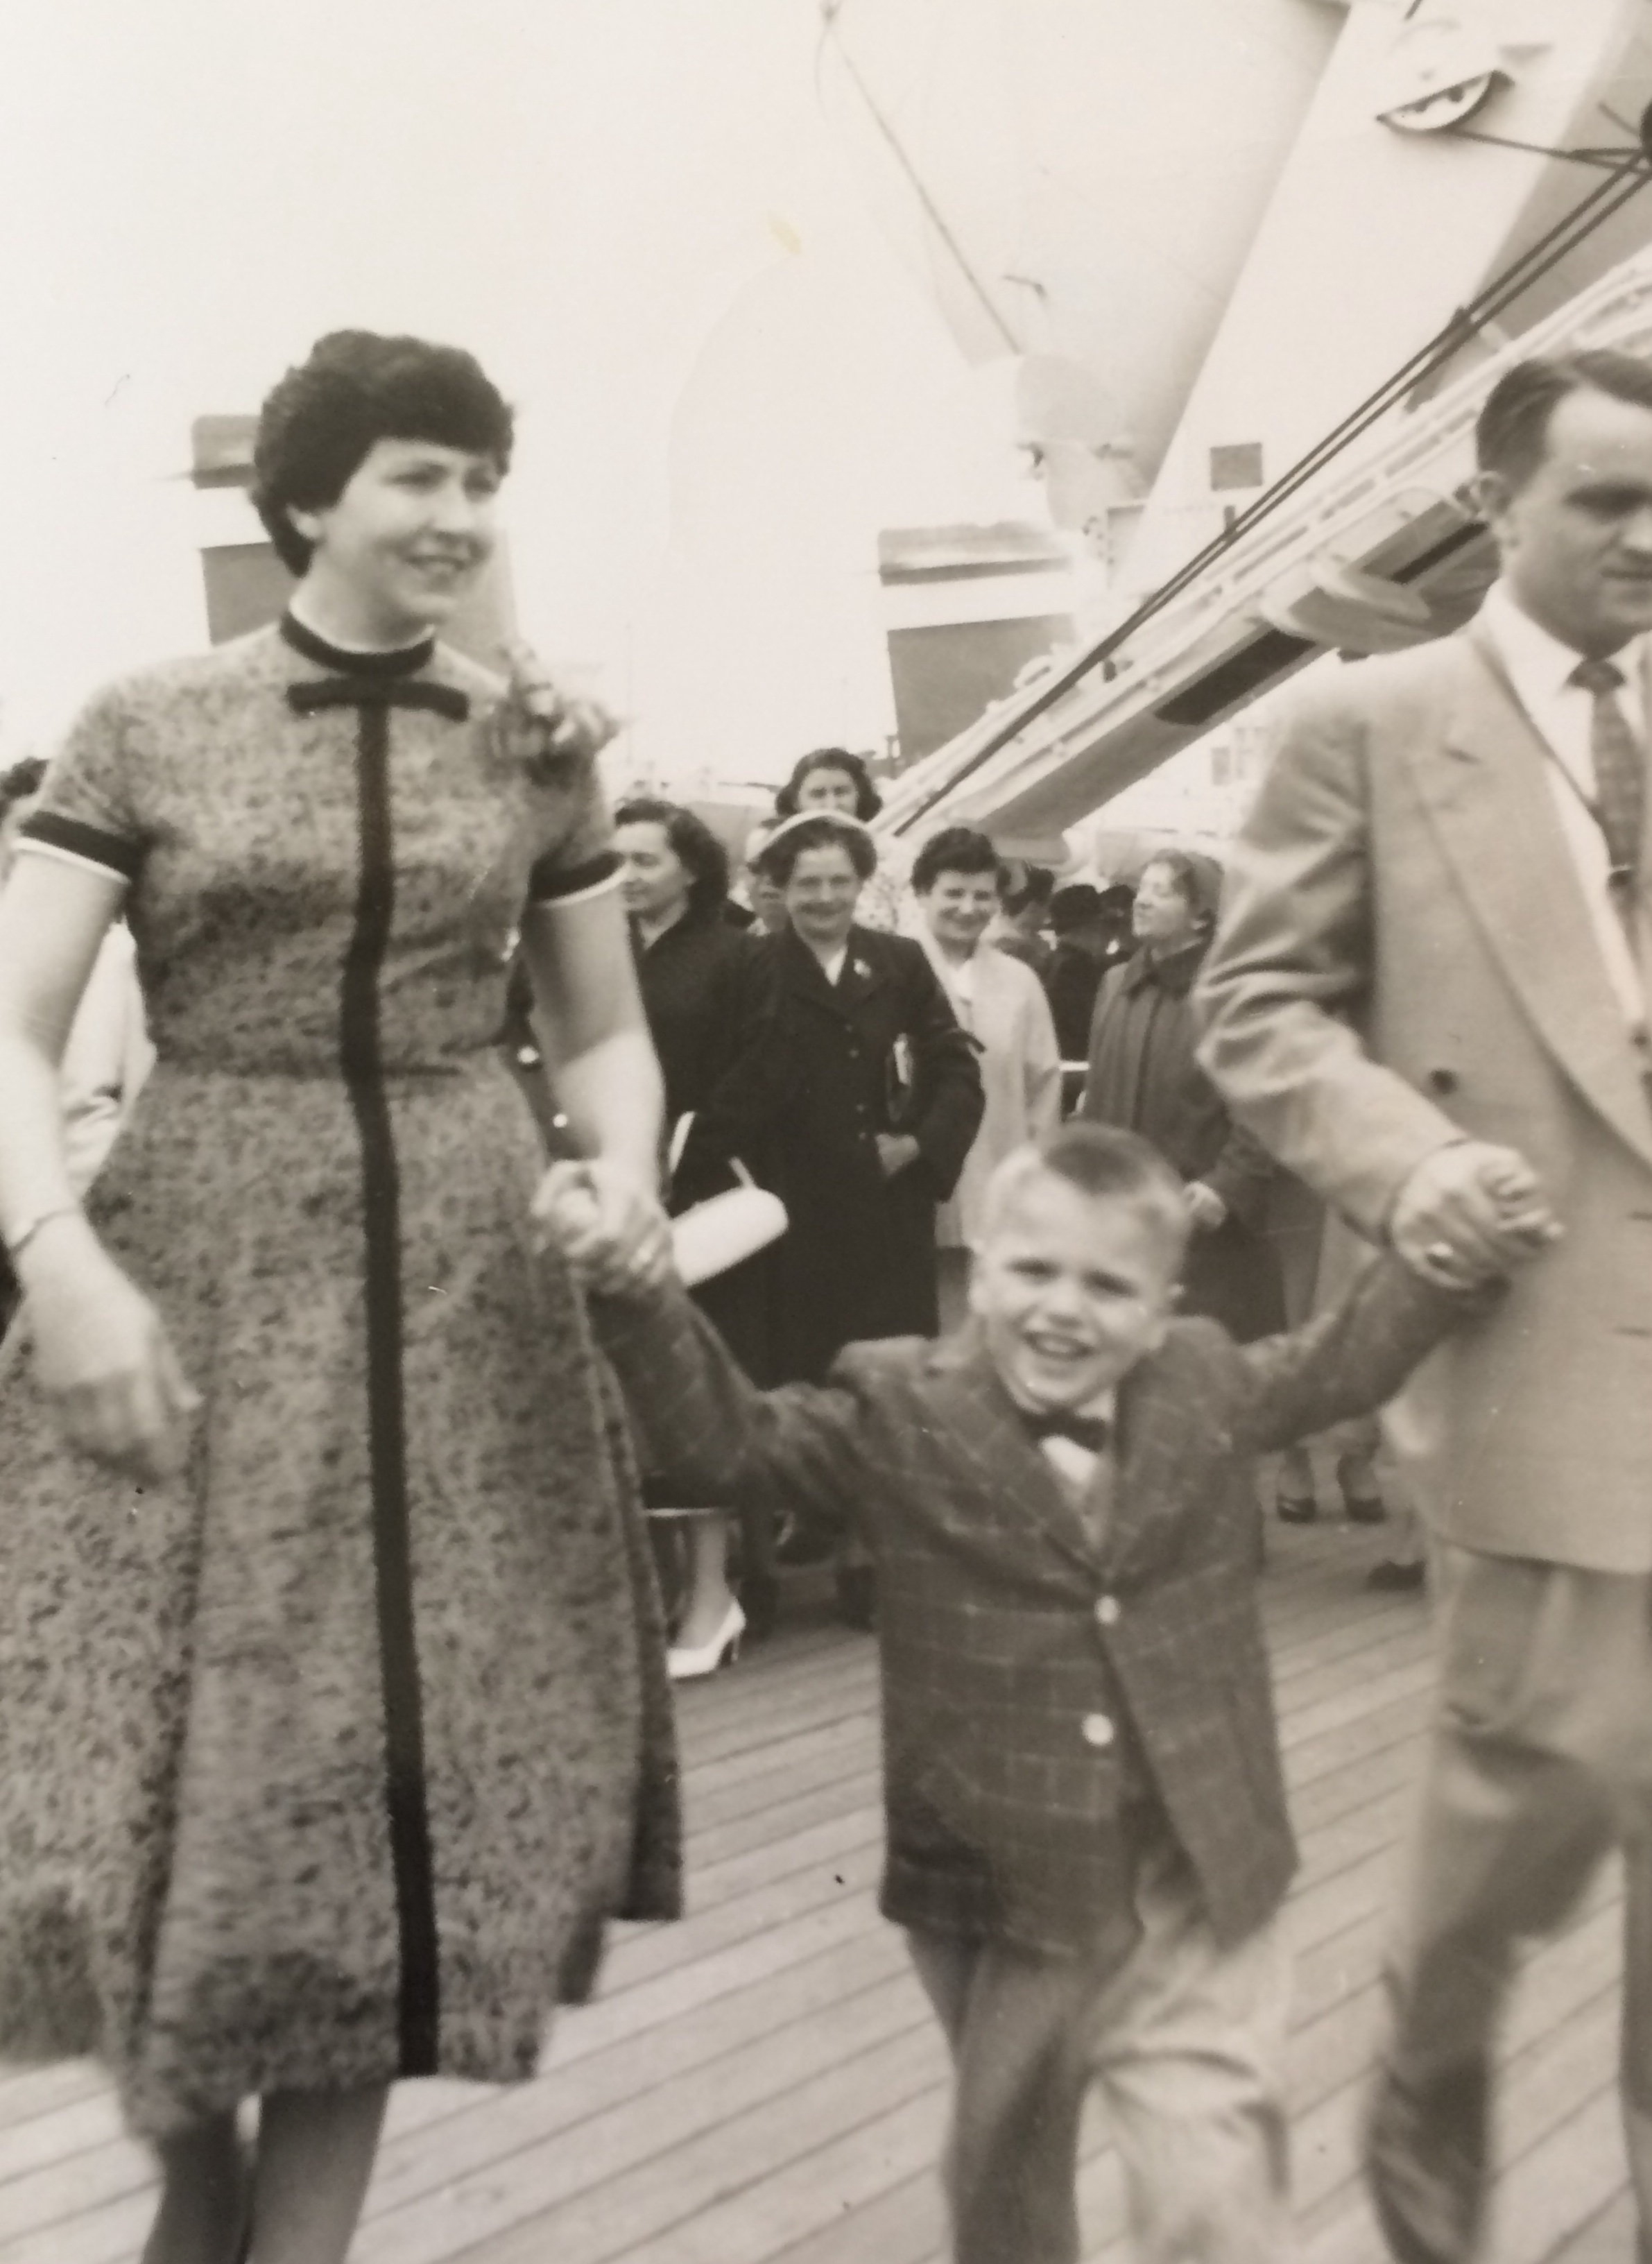 My father and his parents, either coming or going from a boat to the old country.